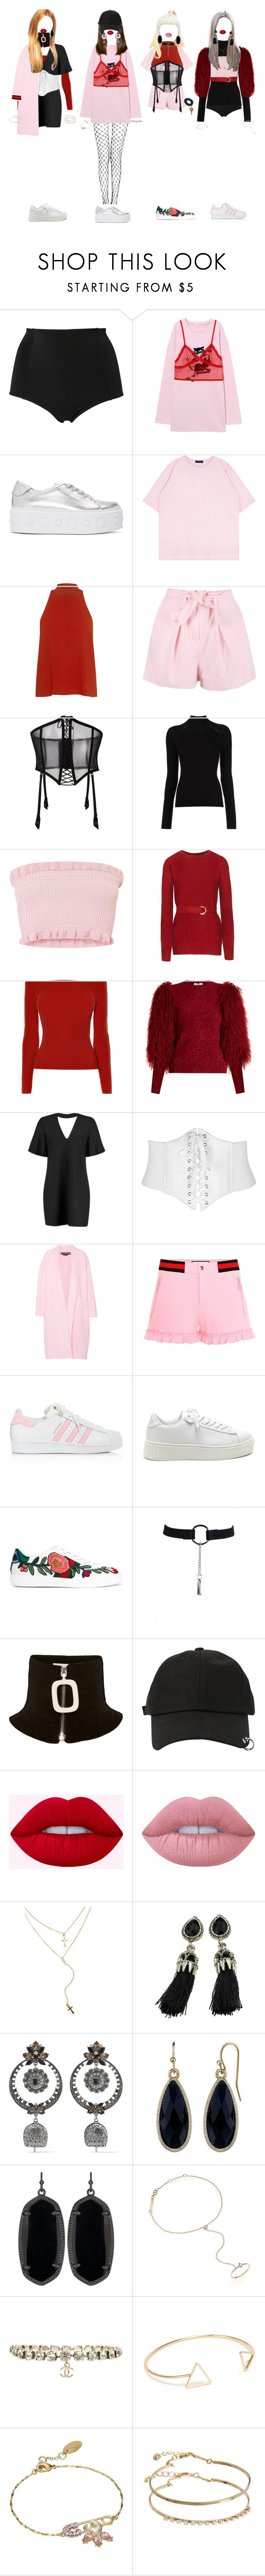 """""""- red, pink concept"""" by xxeucliffexx ❤ liked on Polyvore featuring Monki, Versus, A.L.C., Boohoo, FOLIES BY RENAUD, Misha Nonoo, Sonia Rykiel, Rochas, Gucci and adidas"""